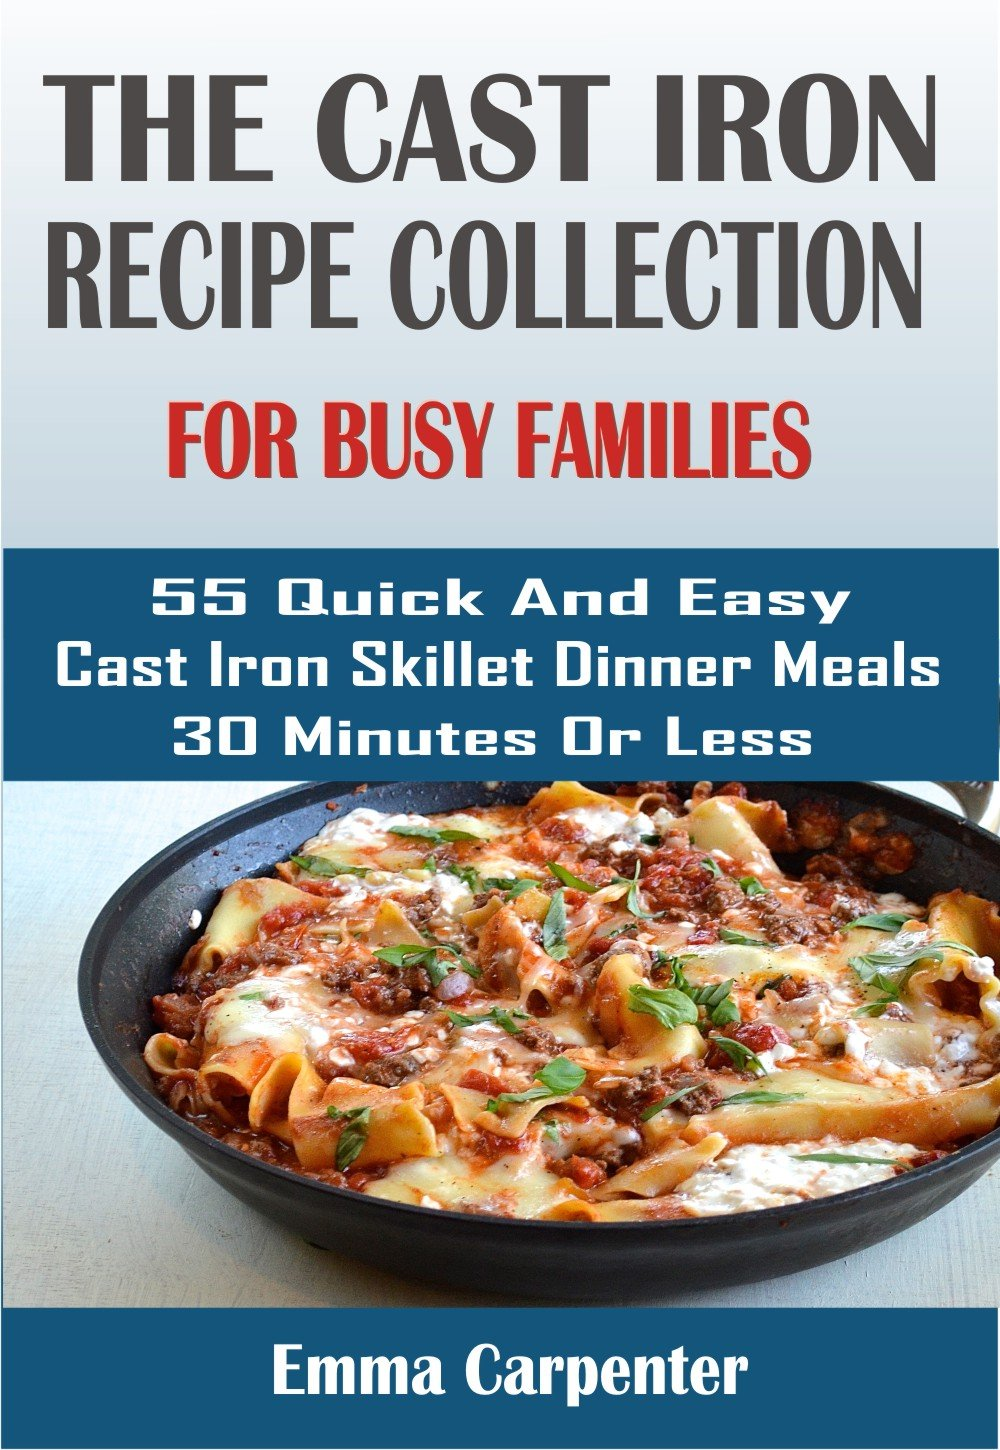 http://www.amazon.com/CAST-IRON-RECIPE-COLLECTION-FAMILIES-ebook/dp/B00MW62PX0/ref=as_sl_pc_ss_til?tag=lettfromahome-20&linkCode=w01&linkId=ZRWK6VTOWT2K2DDA&creativeASIN=B00MW62PX0